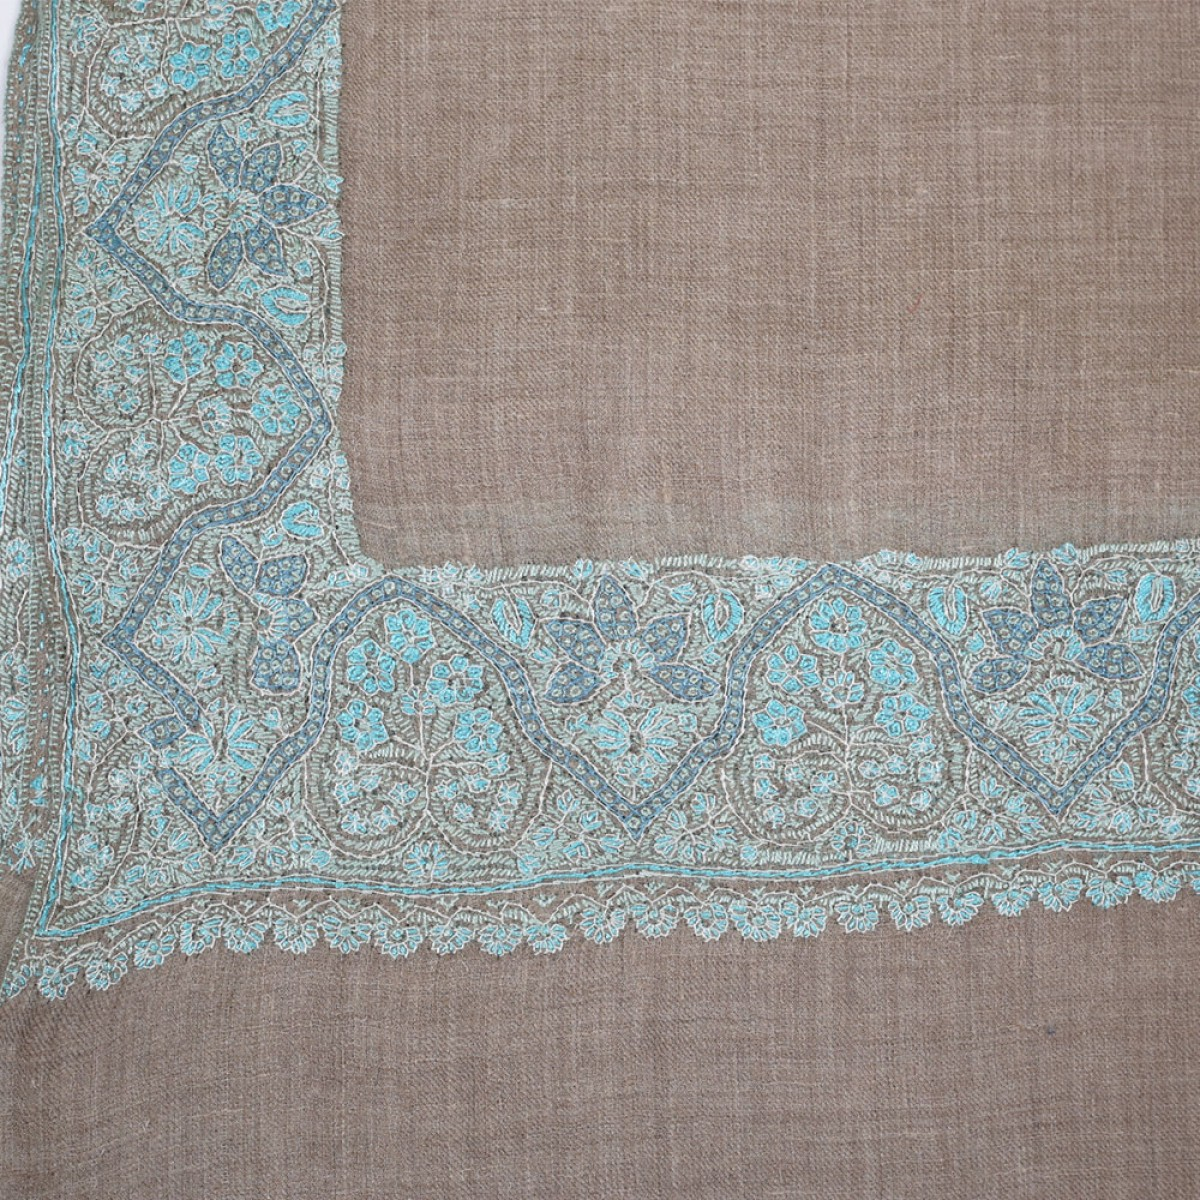 Embroidered Handloom Pashmina Stole - Natural